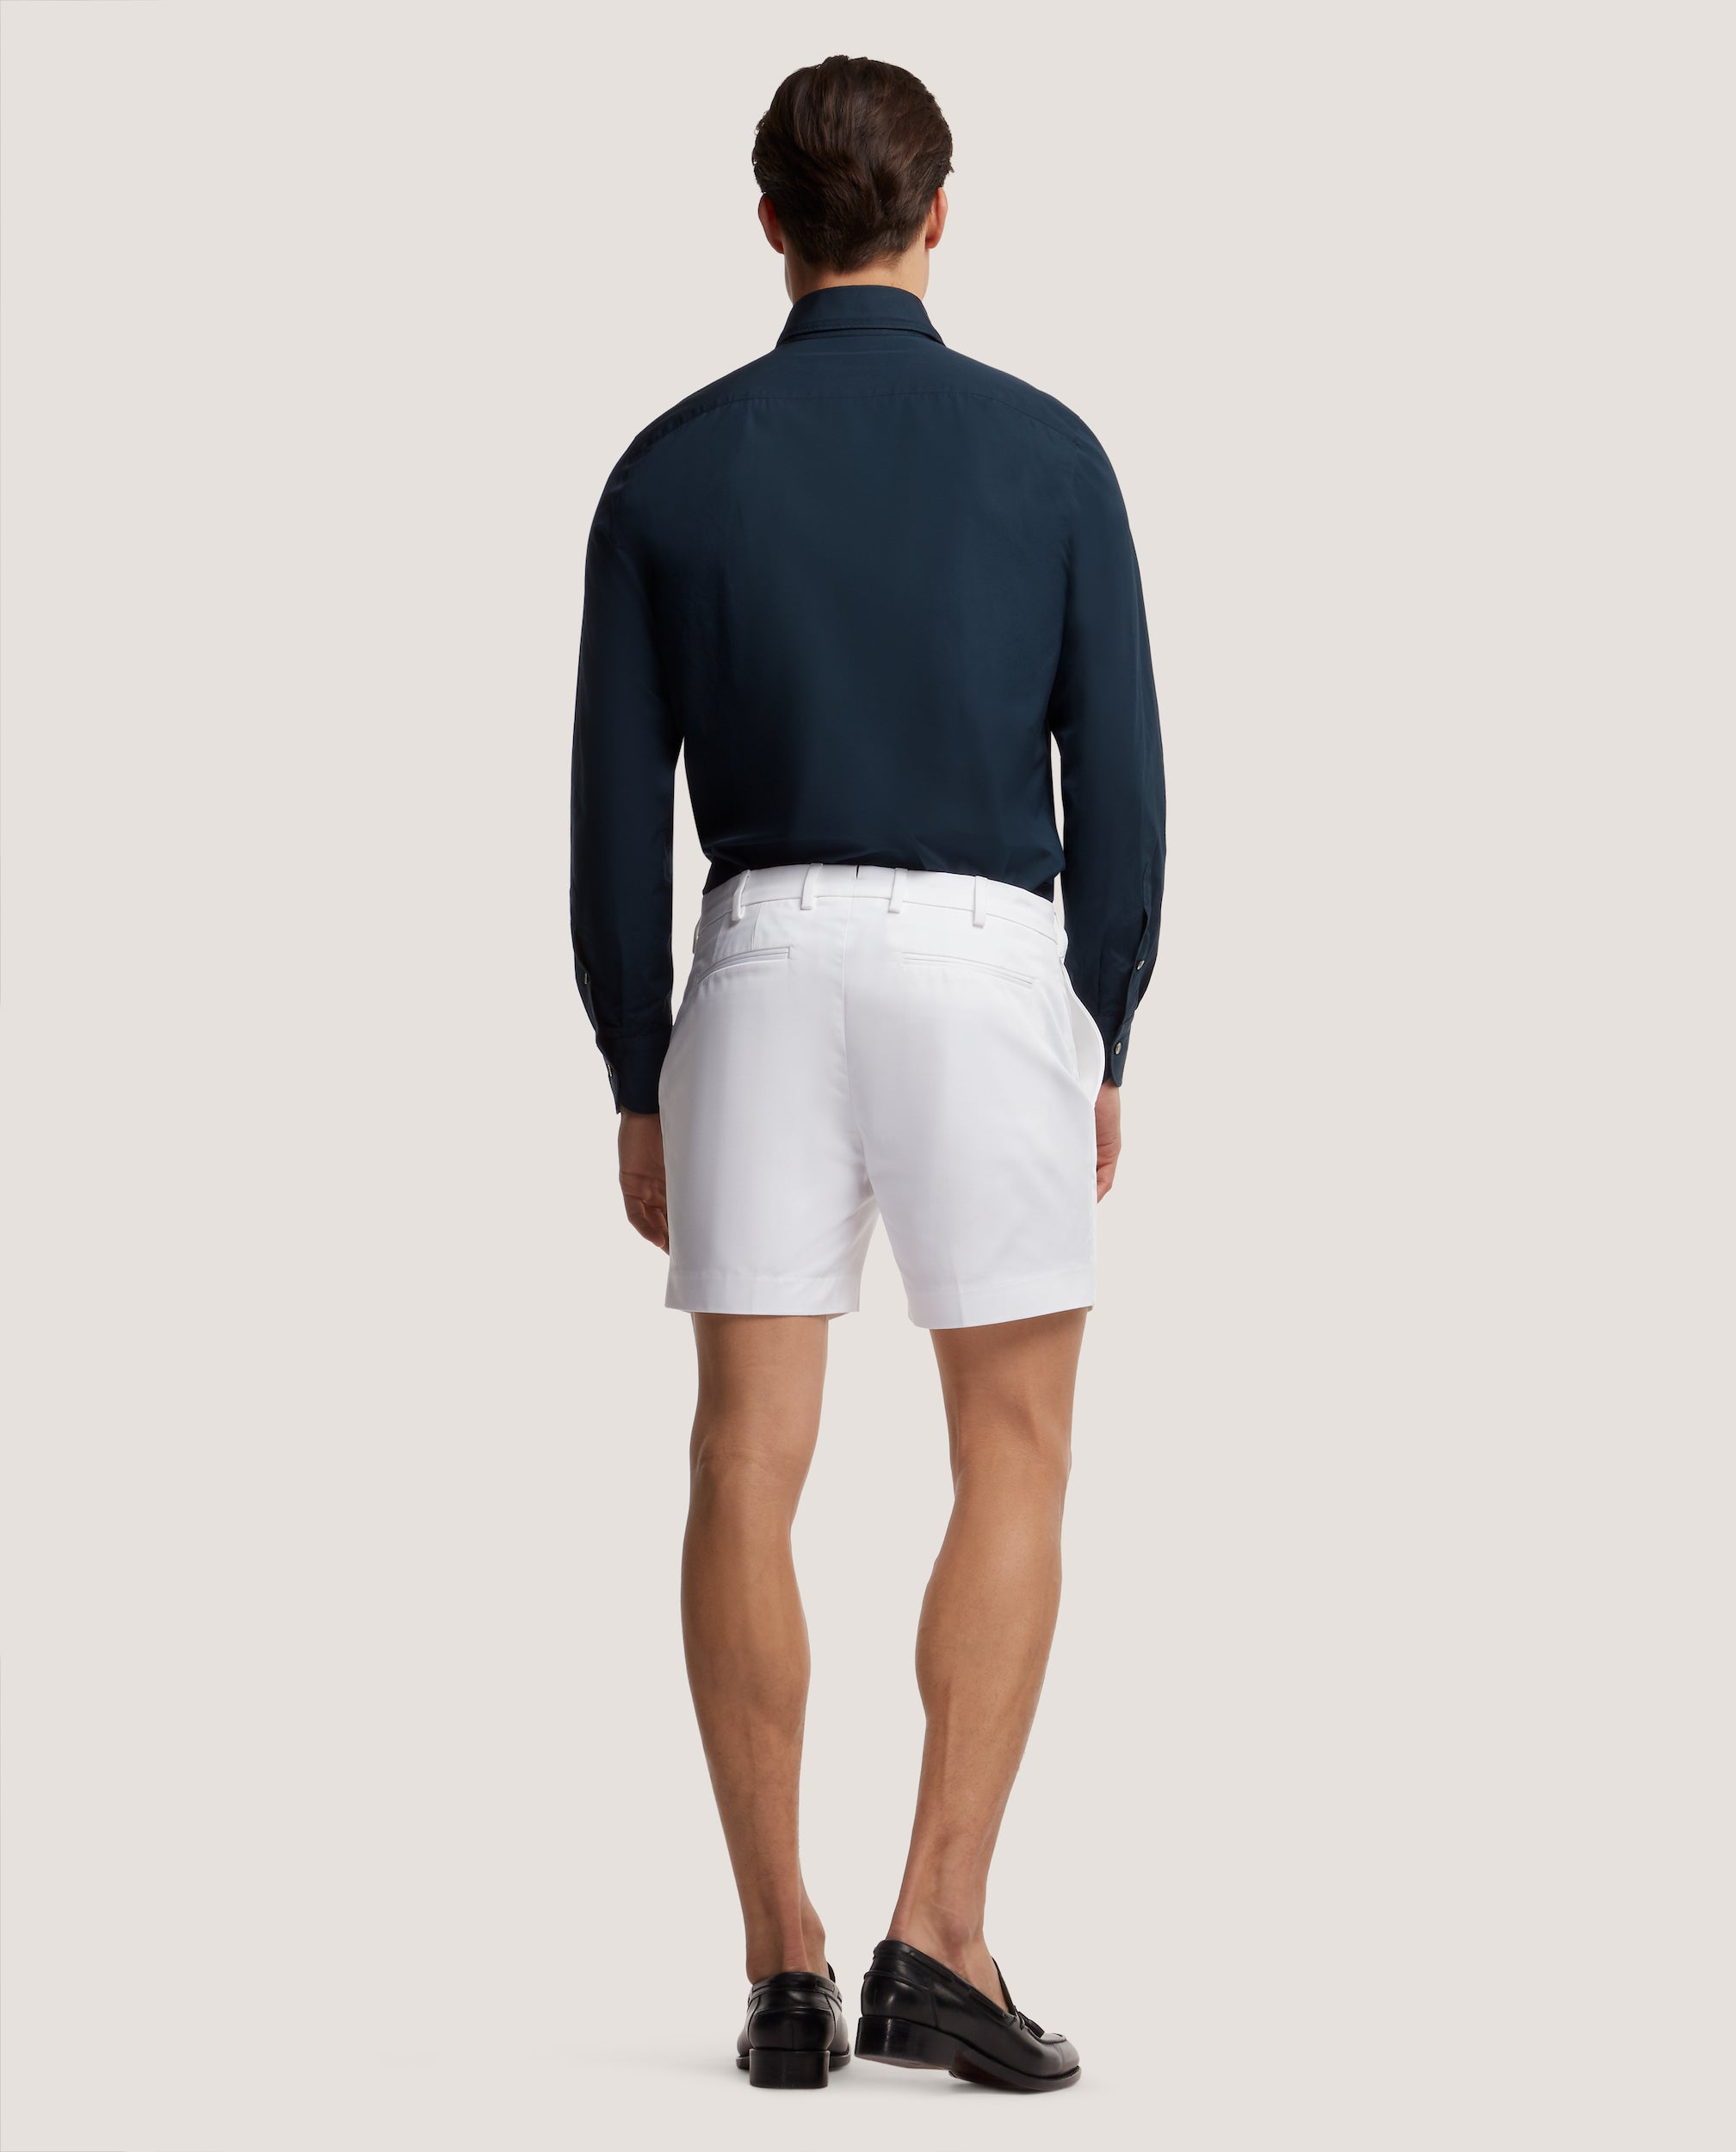 FLORIAN Chino shorts | Short length | Cotton twill | White